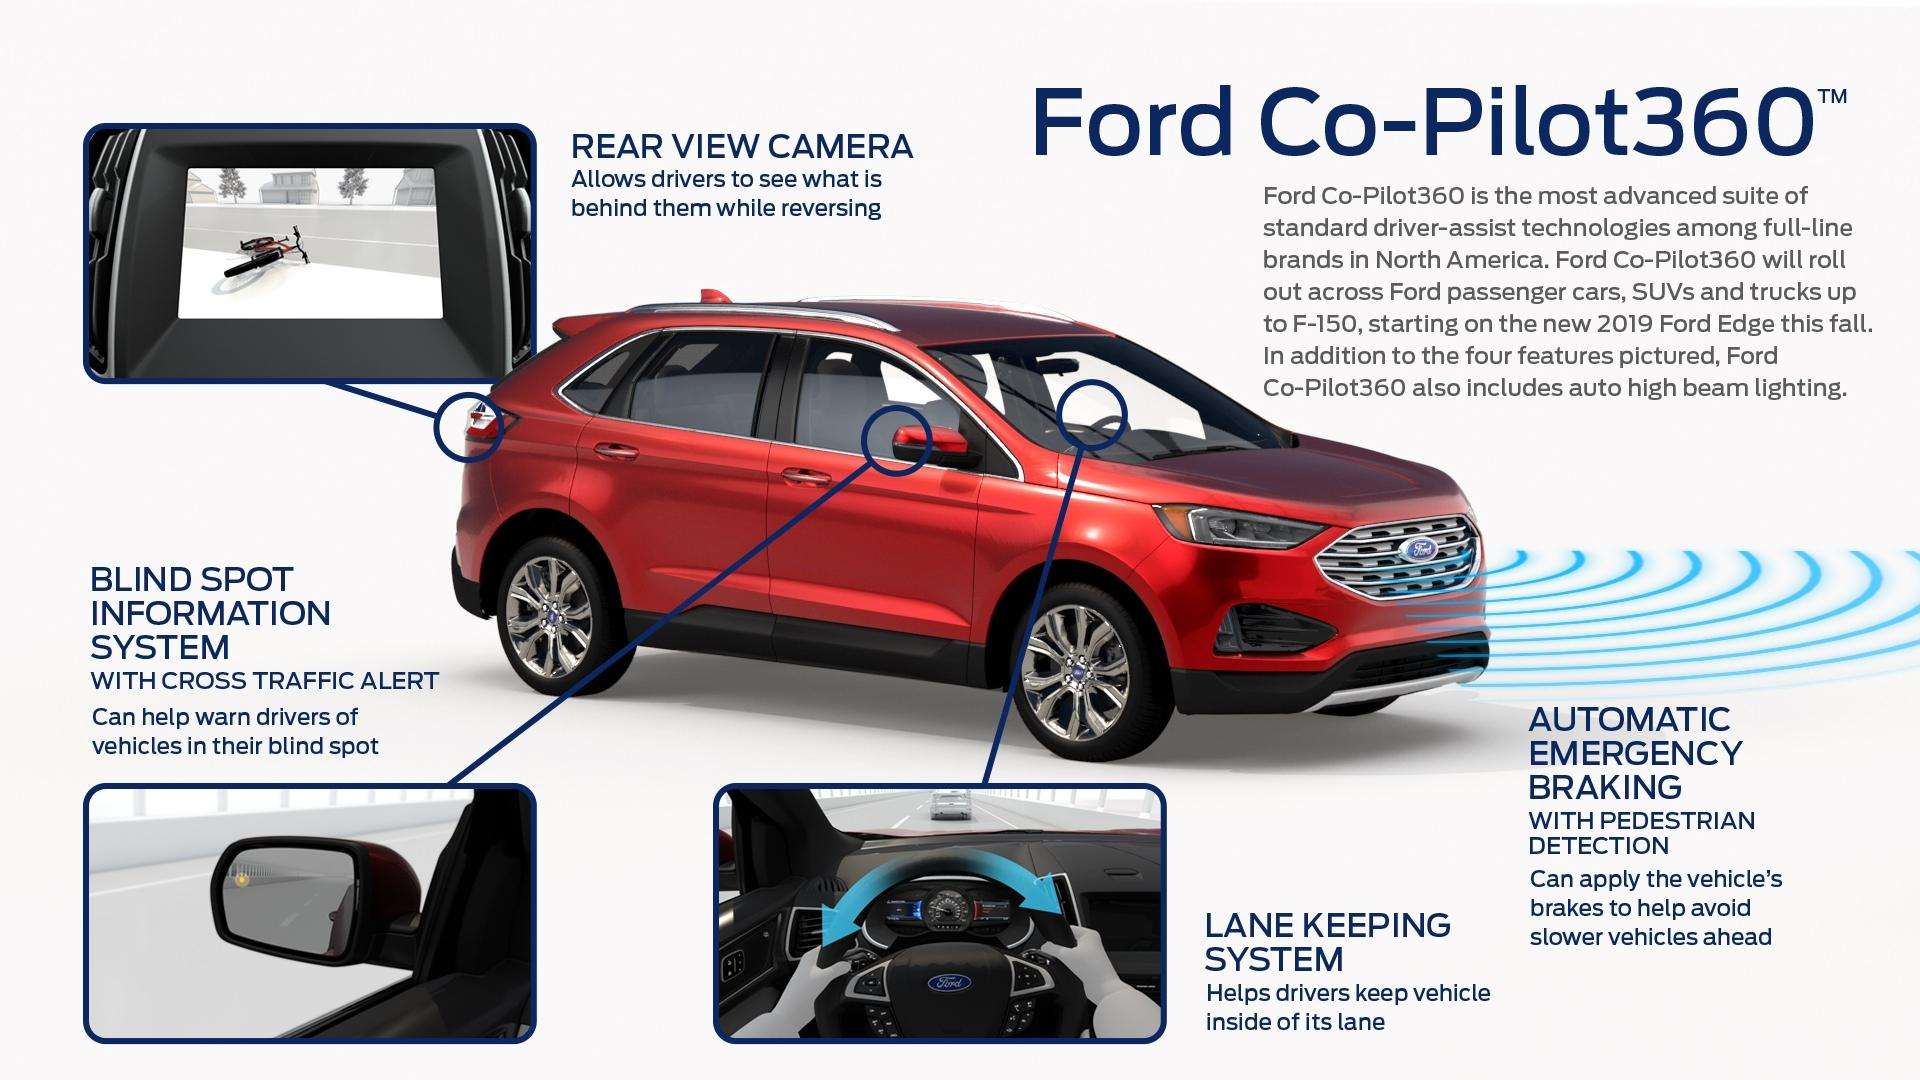 2019 Ford Edge Is First Suv To Feature Co Pilot 360